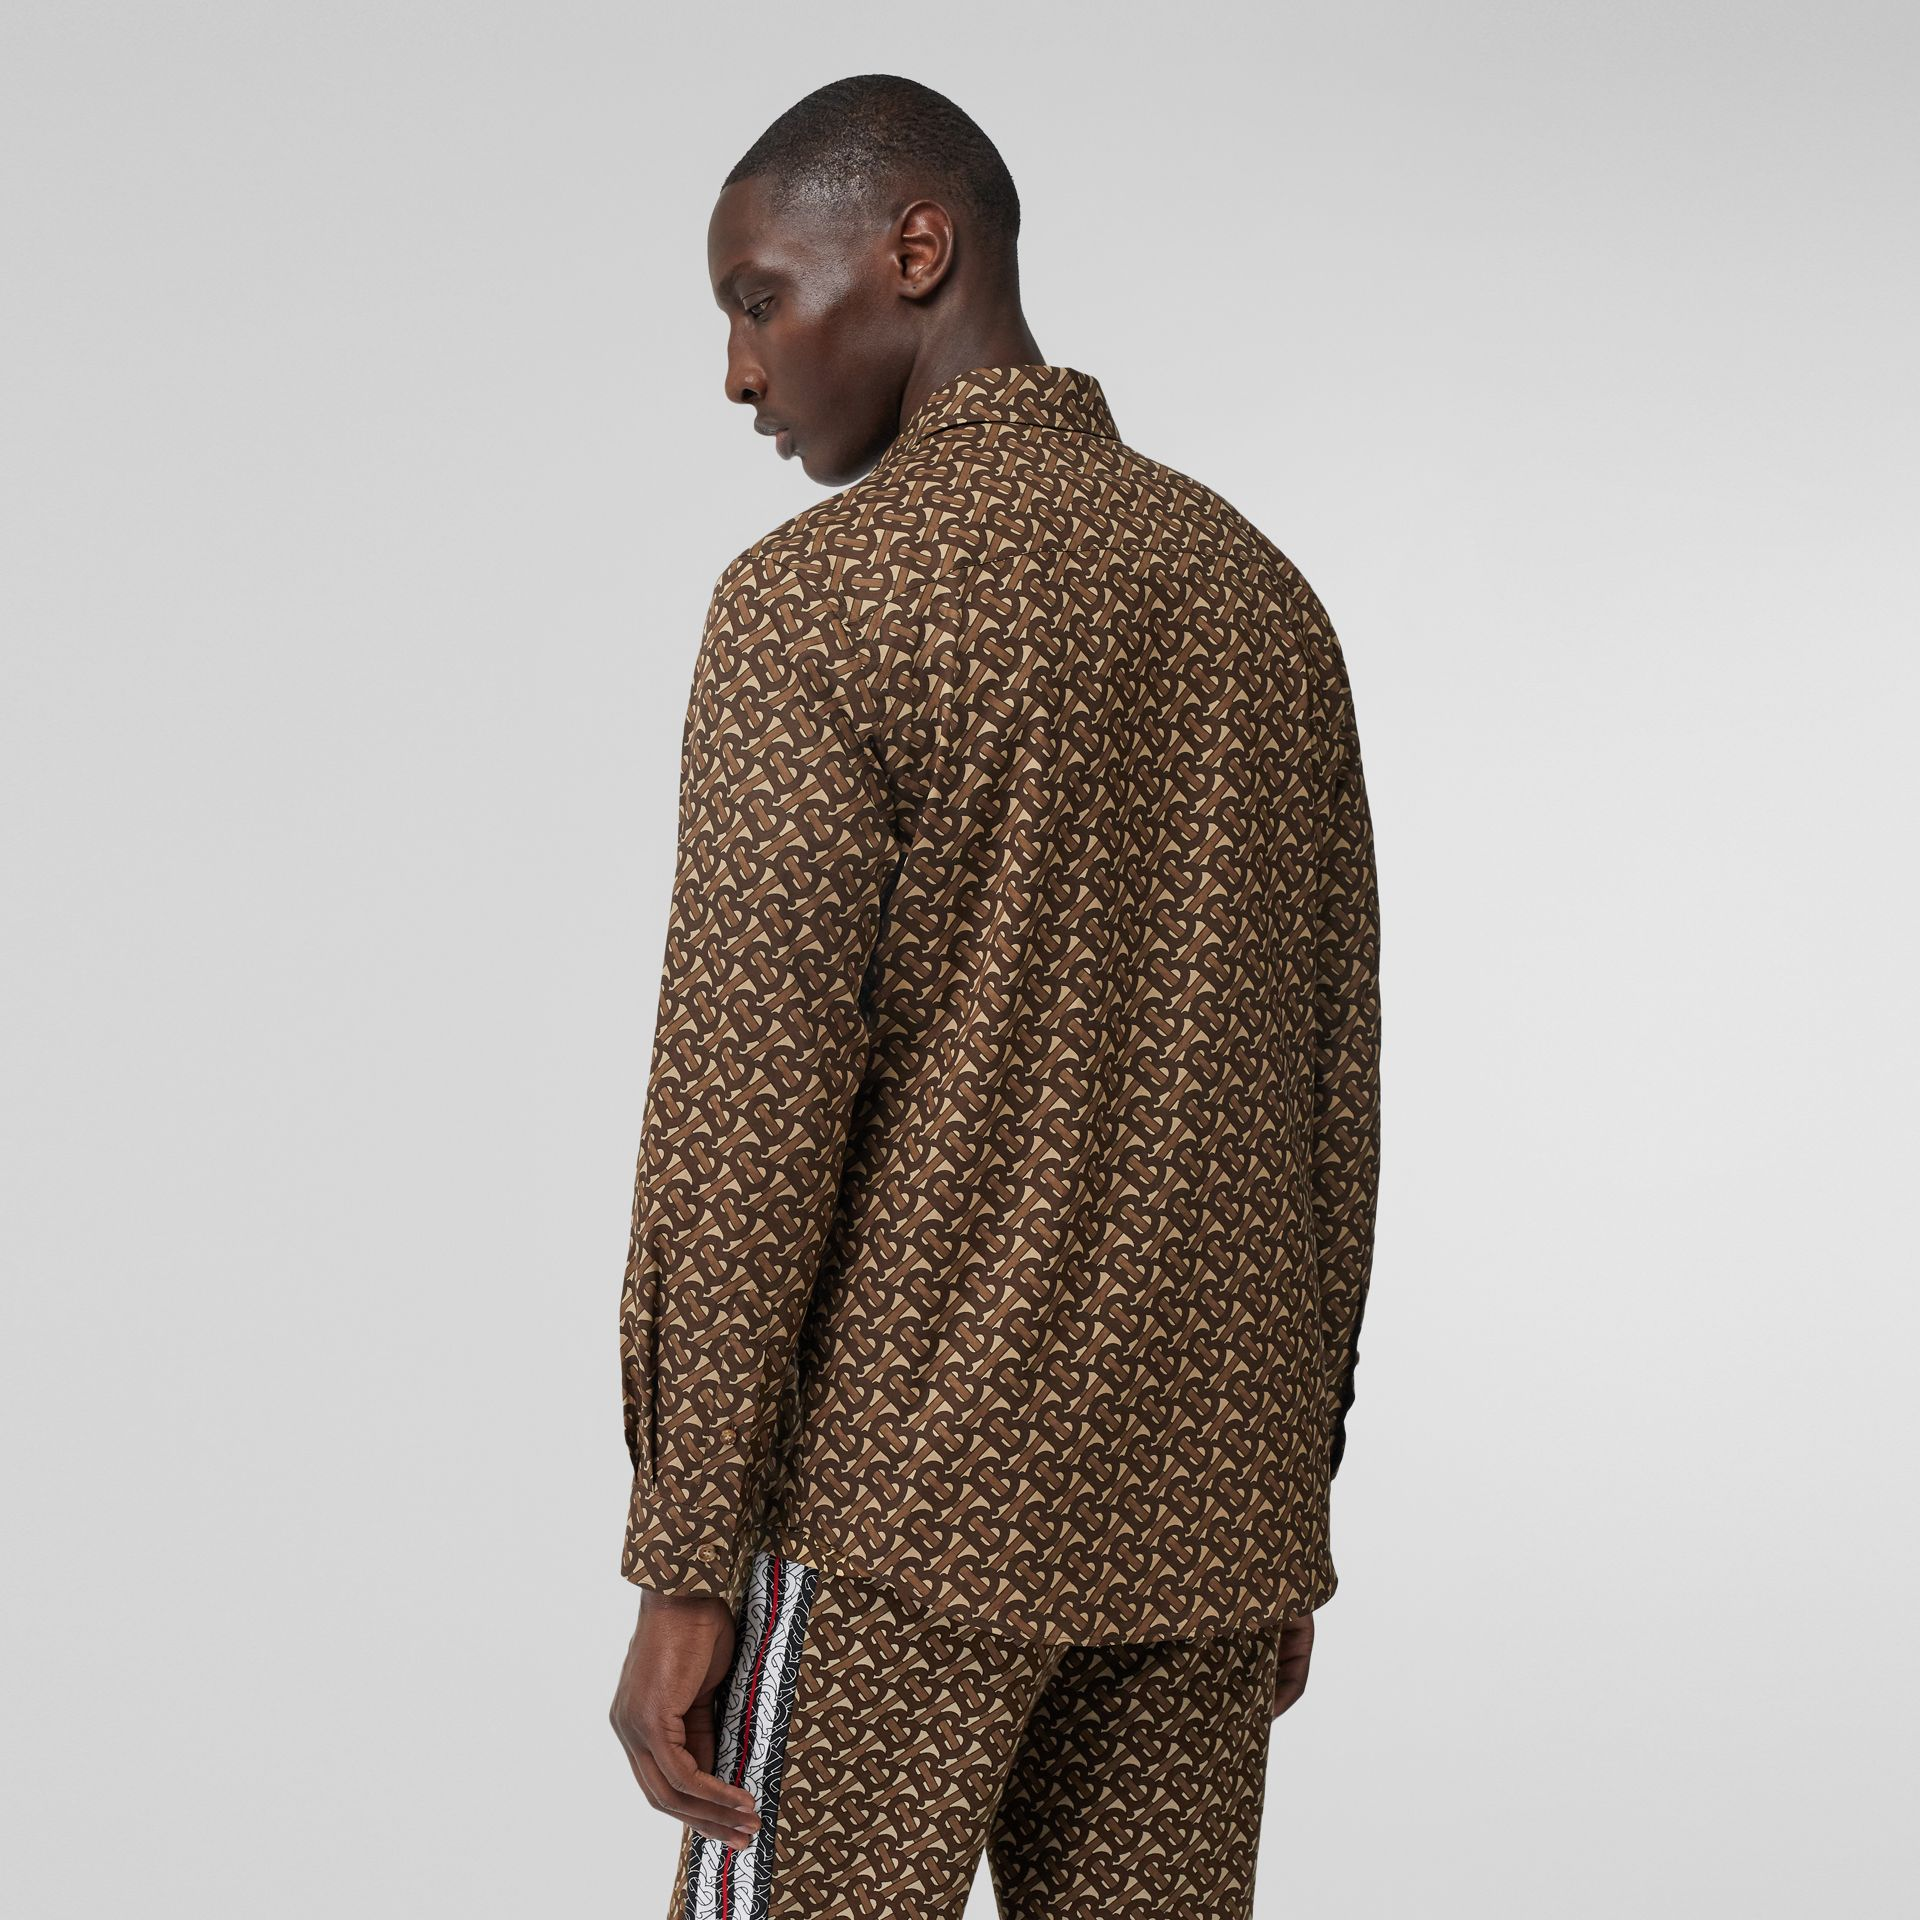 Monogram Stripe Print Cotton Shirt in Bridle Brown - Men | Burberry Hong Kong S.A.R - gallery image 2